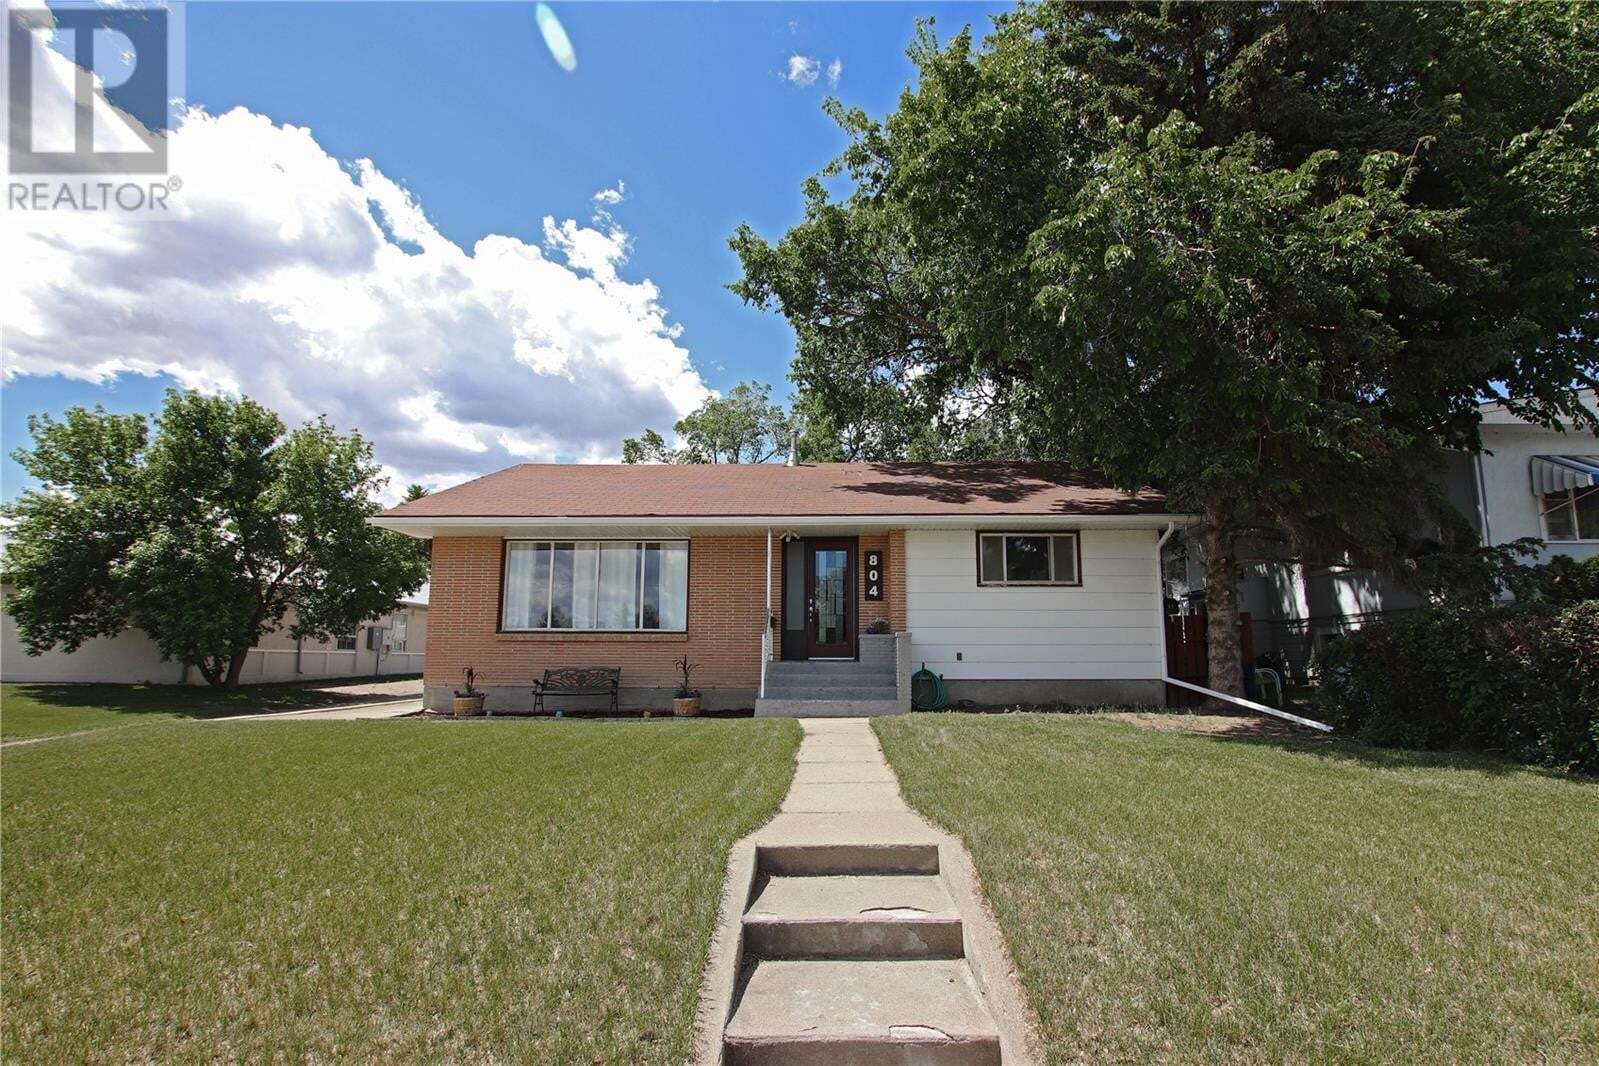 House for sale at 804 1st Ave NW Swift Current Saskatchewan - MLS: SK812868